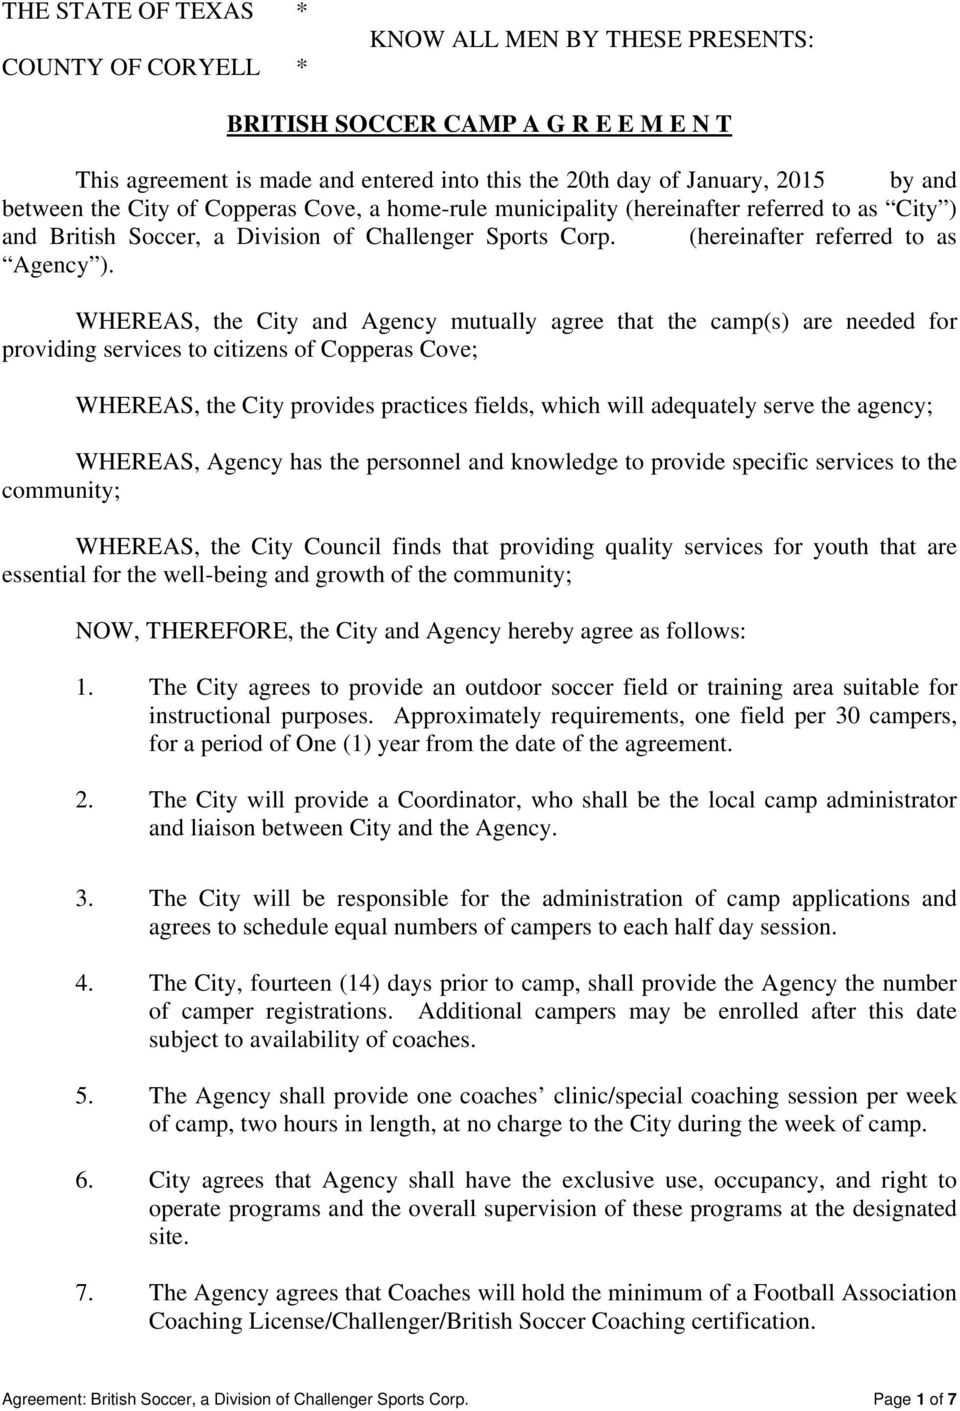 WHEREAS, the City and Agency mutually agree that the camp(s) are needed for providing services to citizens of Copperas Cove; WHEREAS, the City provides practices fields, which will adequately serve